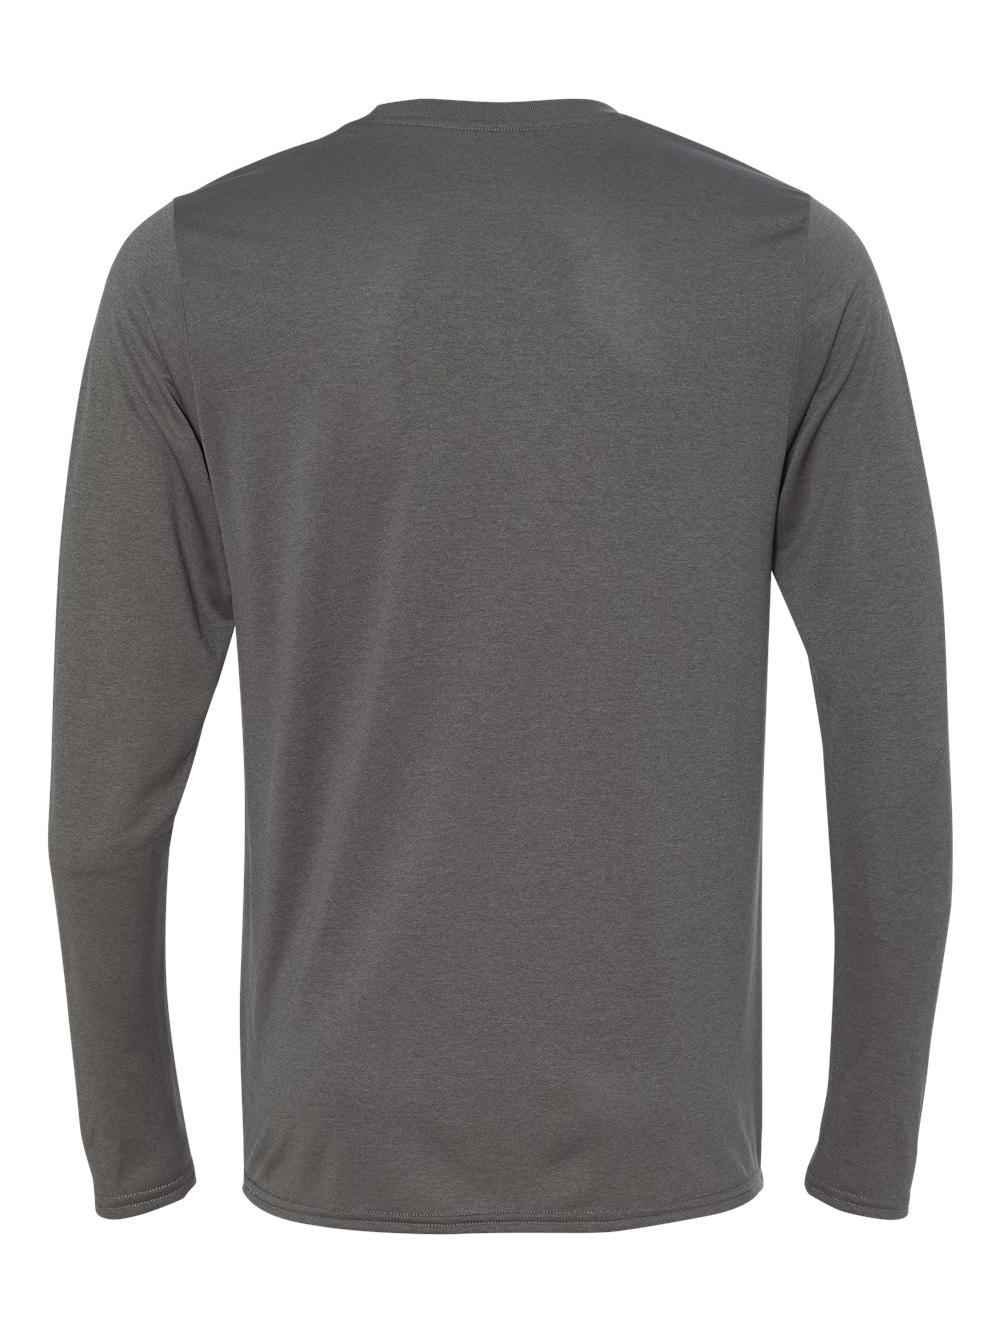 Gildan-Tech-Performance-Long-Sleeve-T-Shirt-47400 thumbnail 10